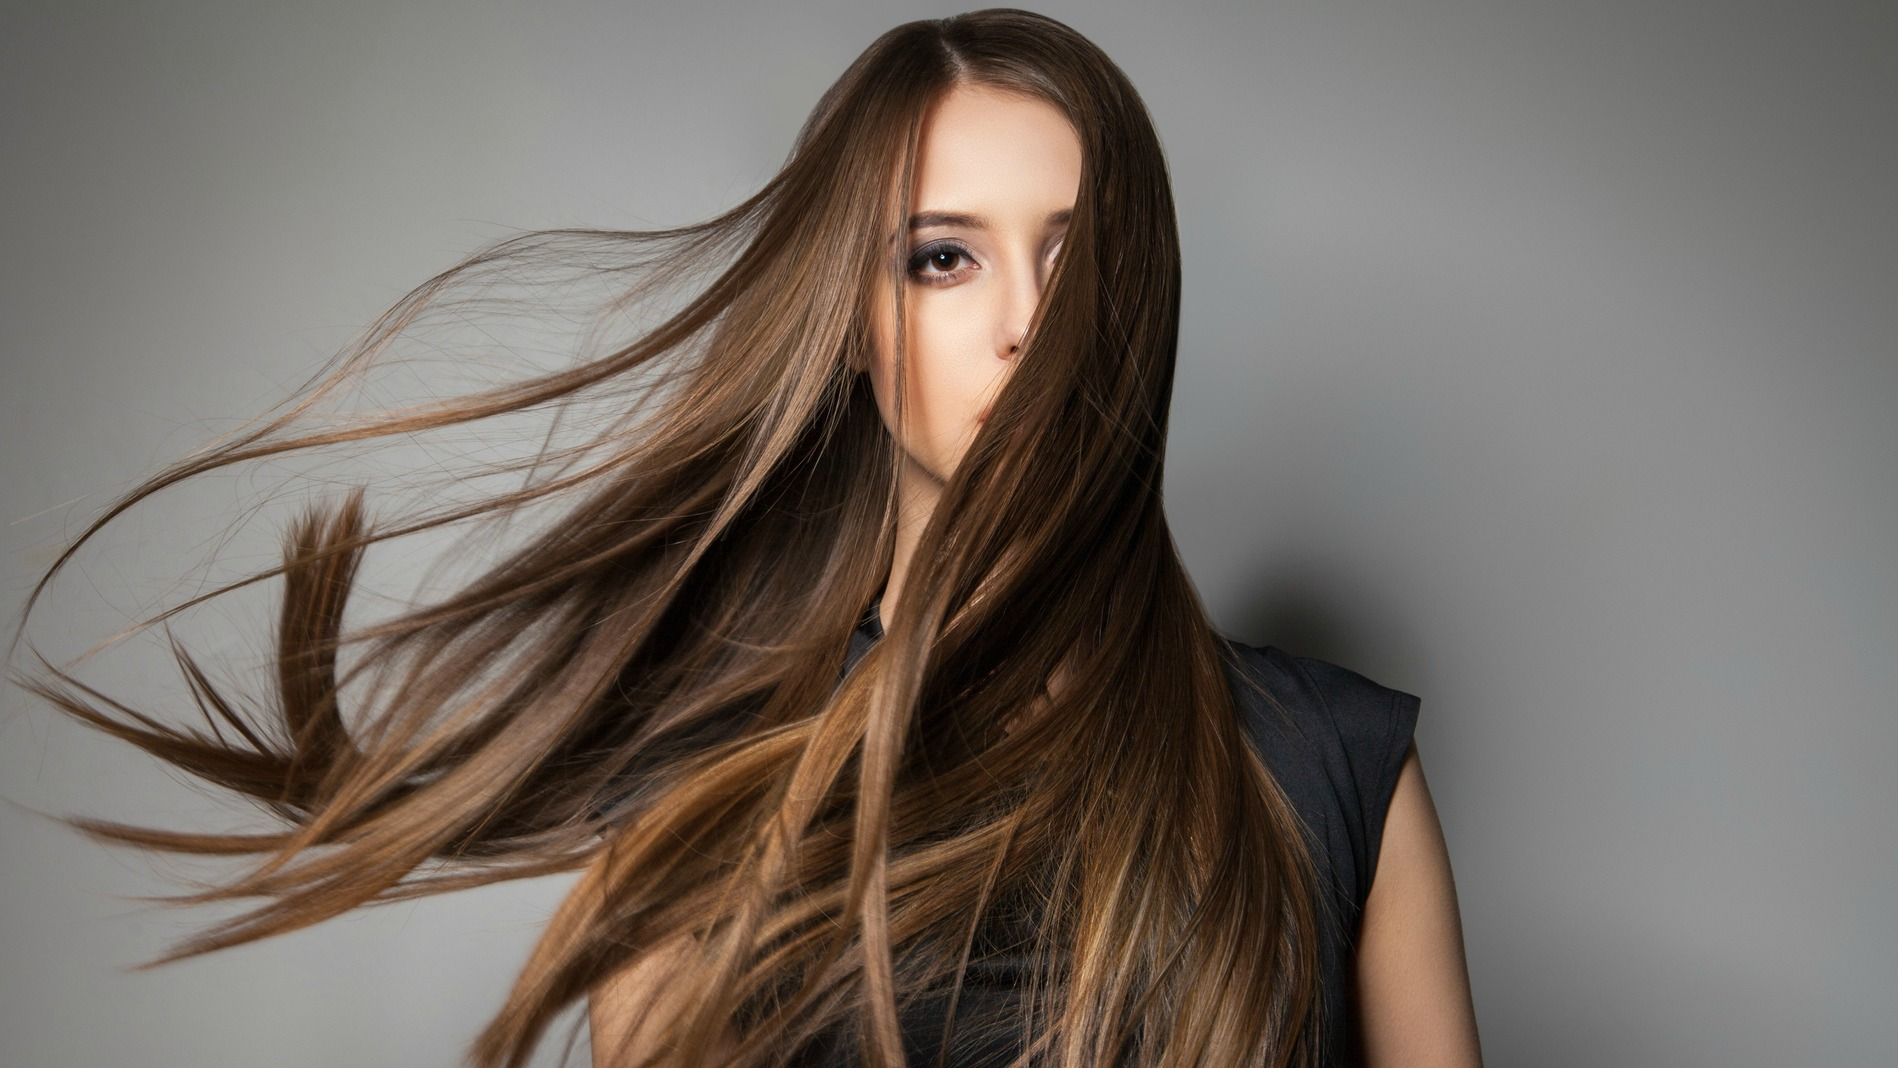 Lifestyle Changes That Can Prevent Hair Fall